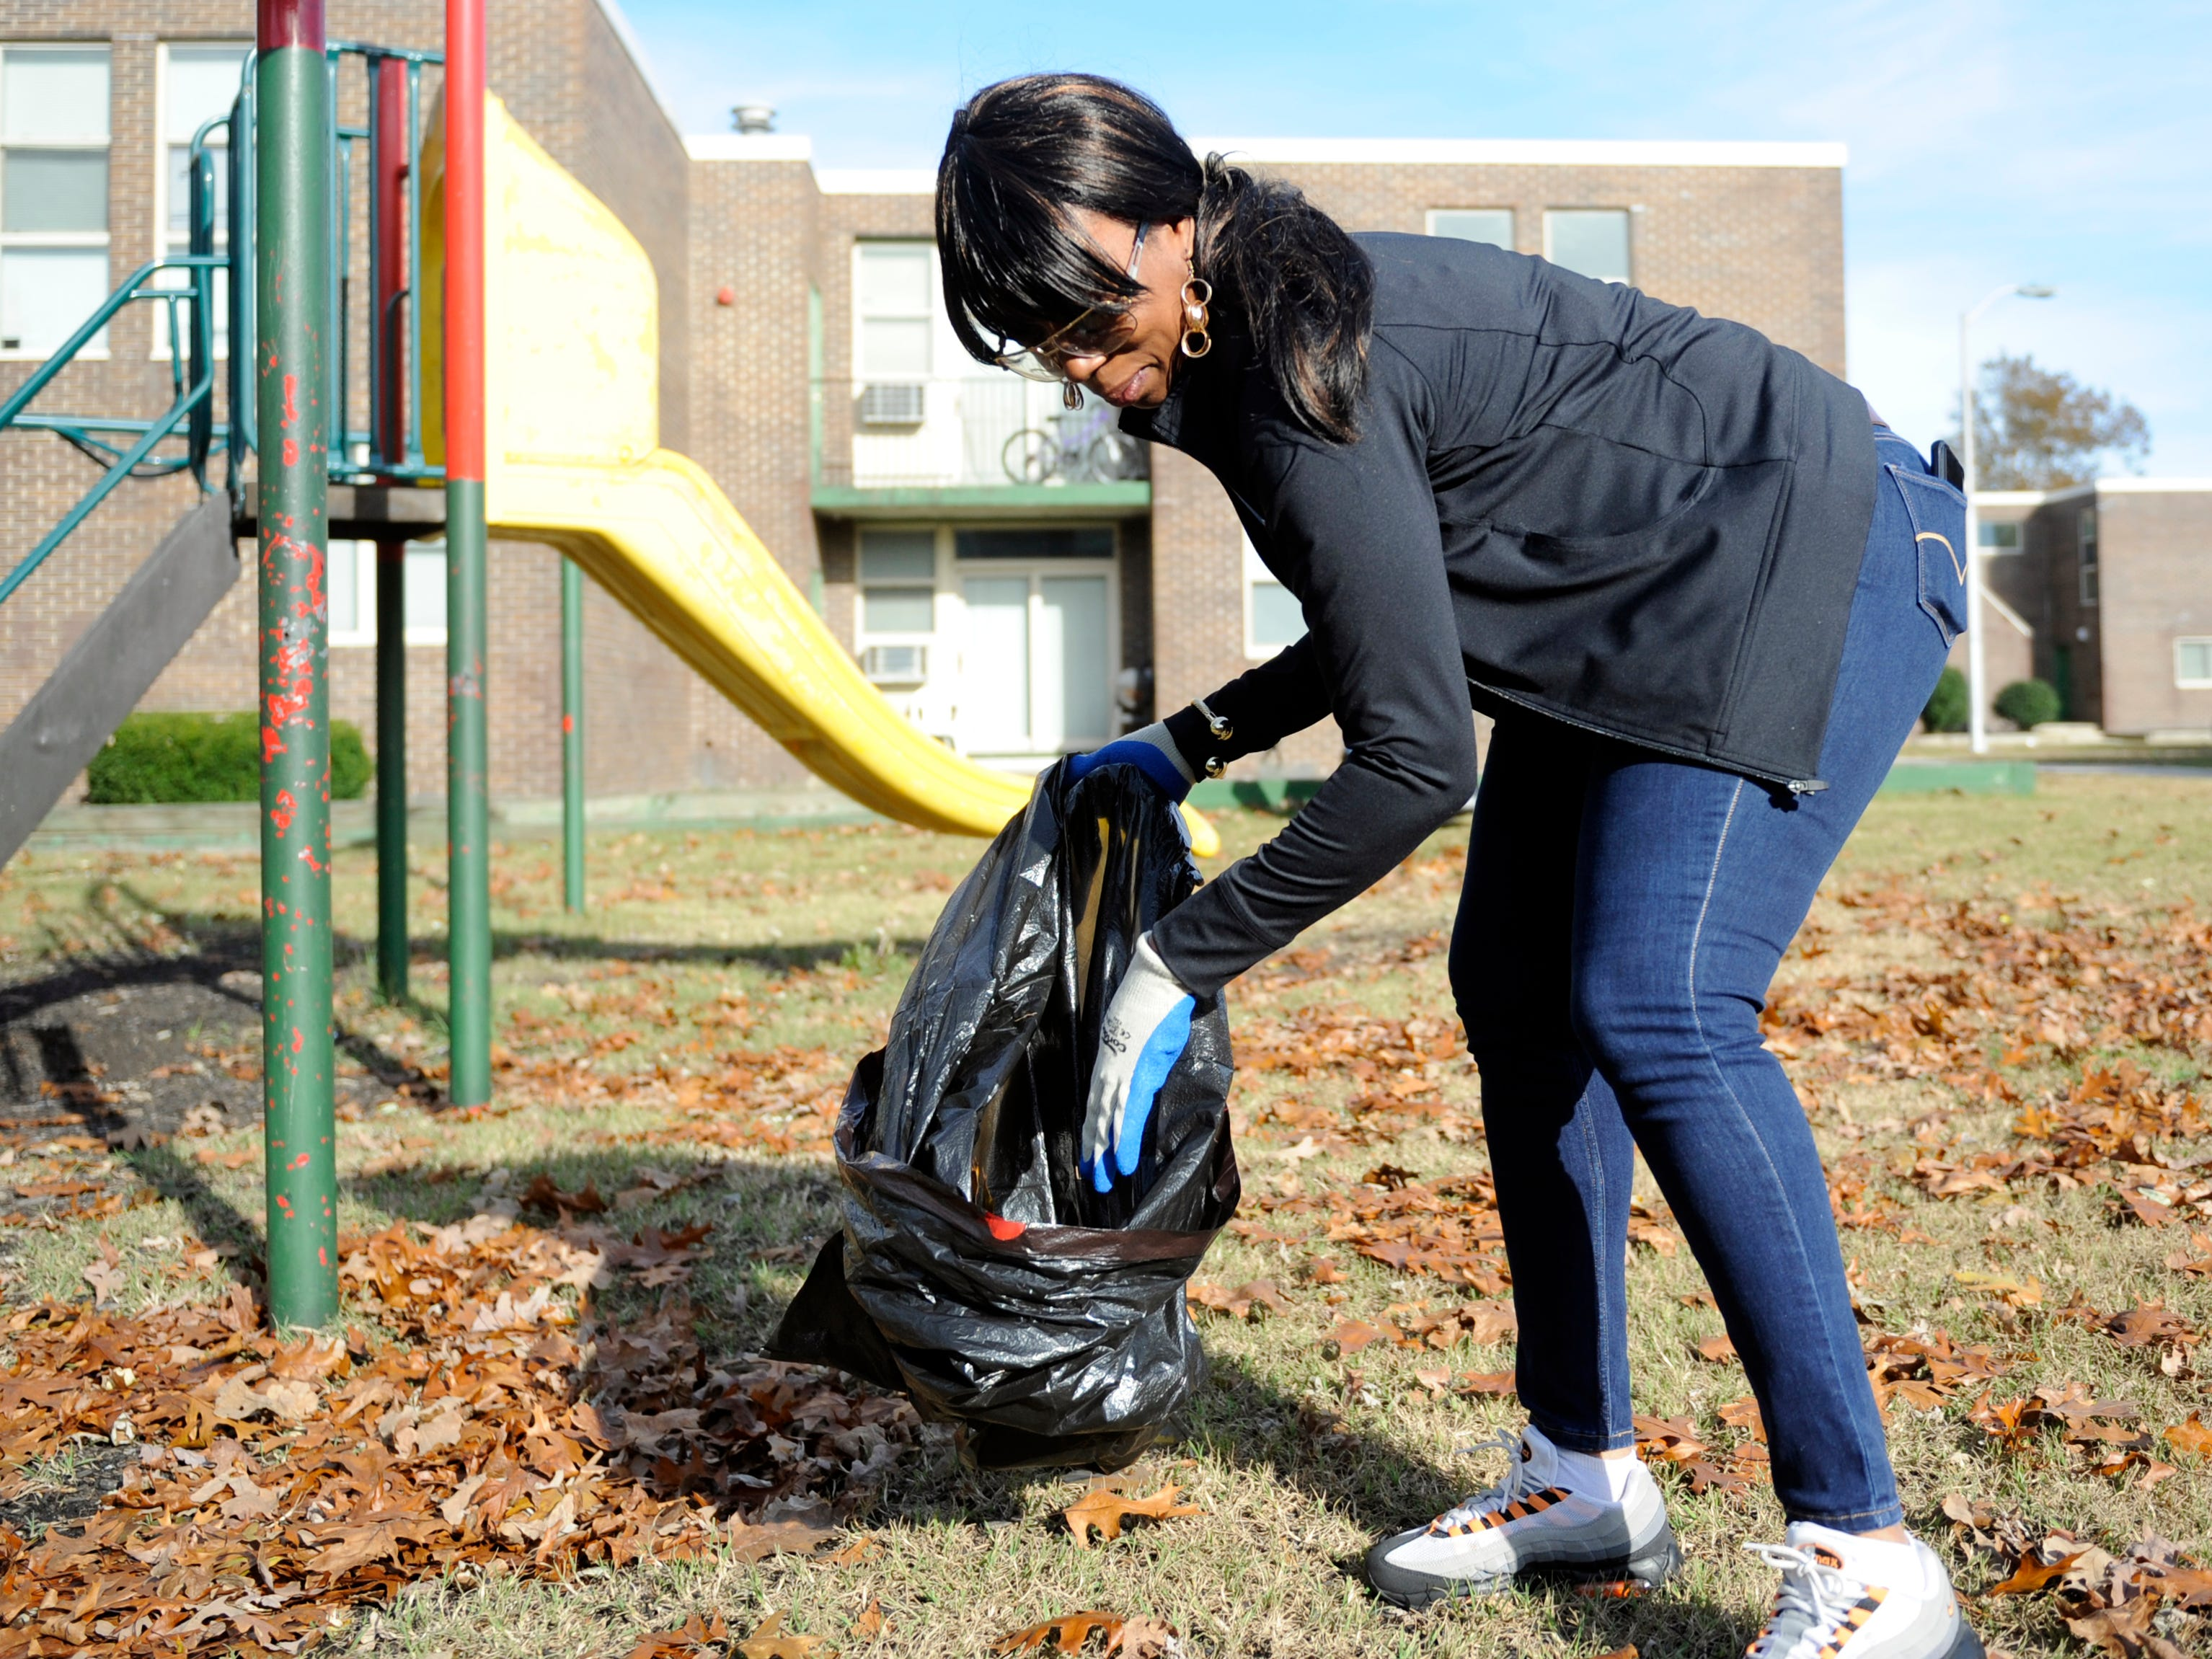 Jaclyn Garrett, Senior Property Manager at Oakview Apartments in Millville, picks up trash near a playground during a special community clean up event on Thursday, November 8, 2018.